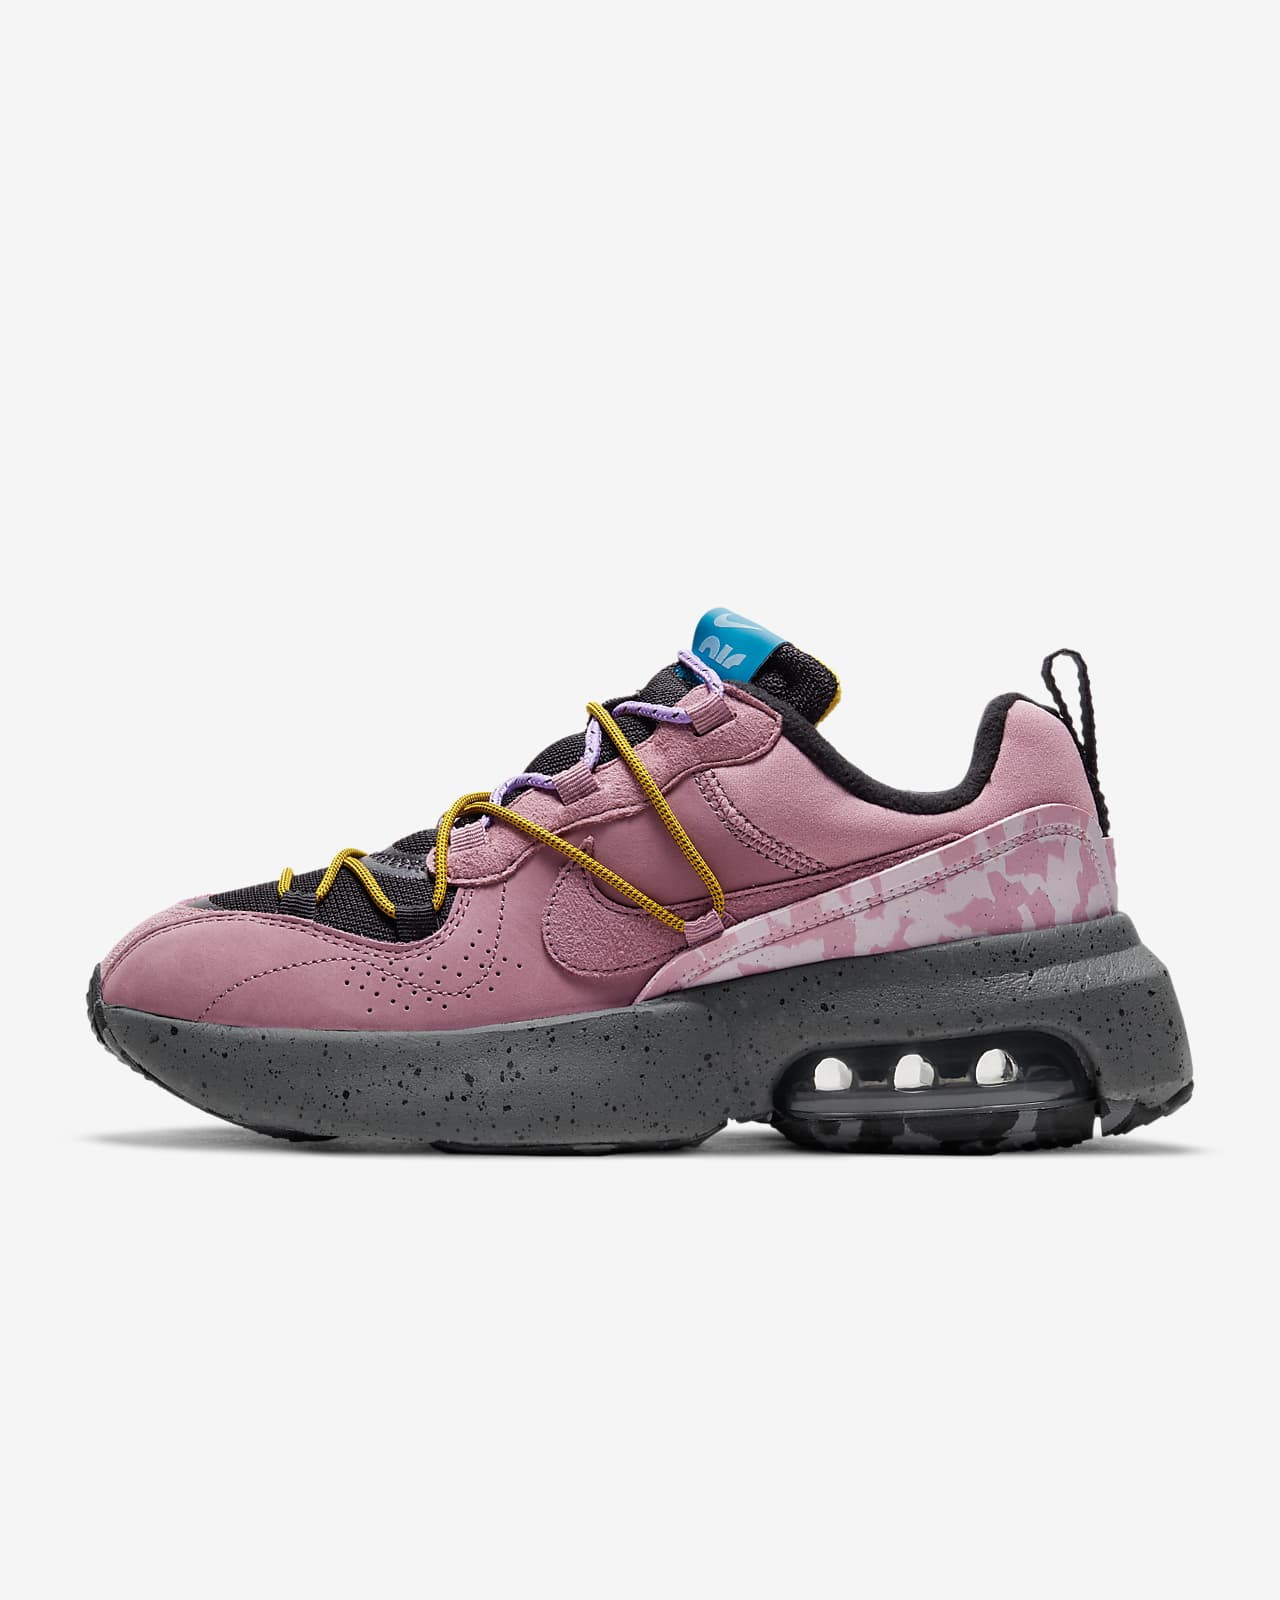 Nike Air Max Viva Women's Shoe